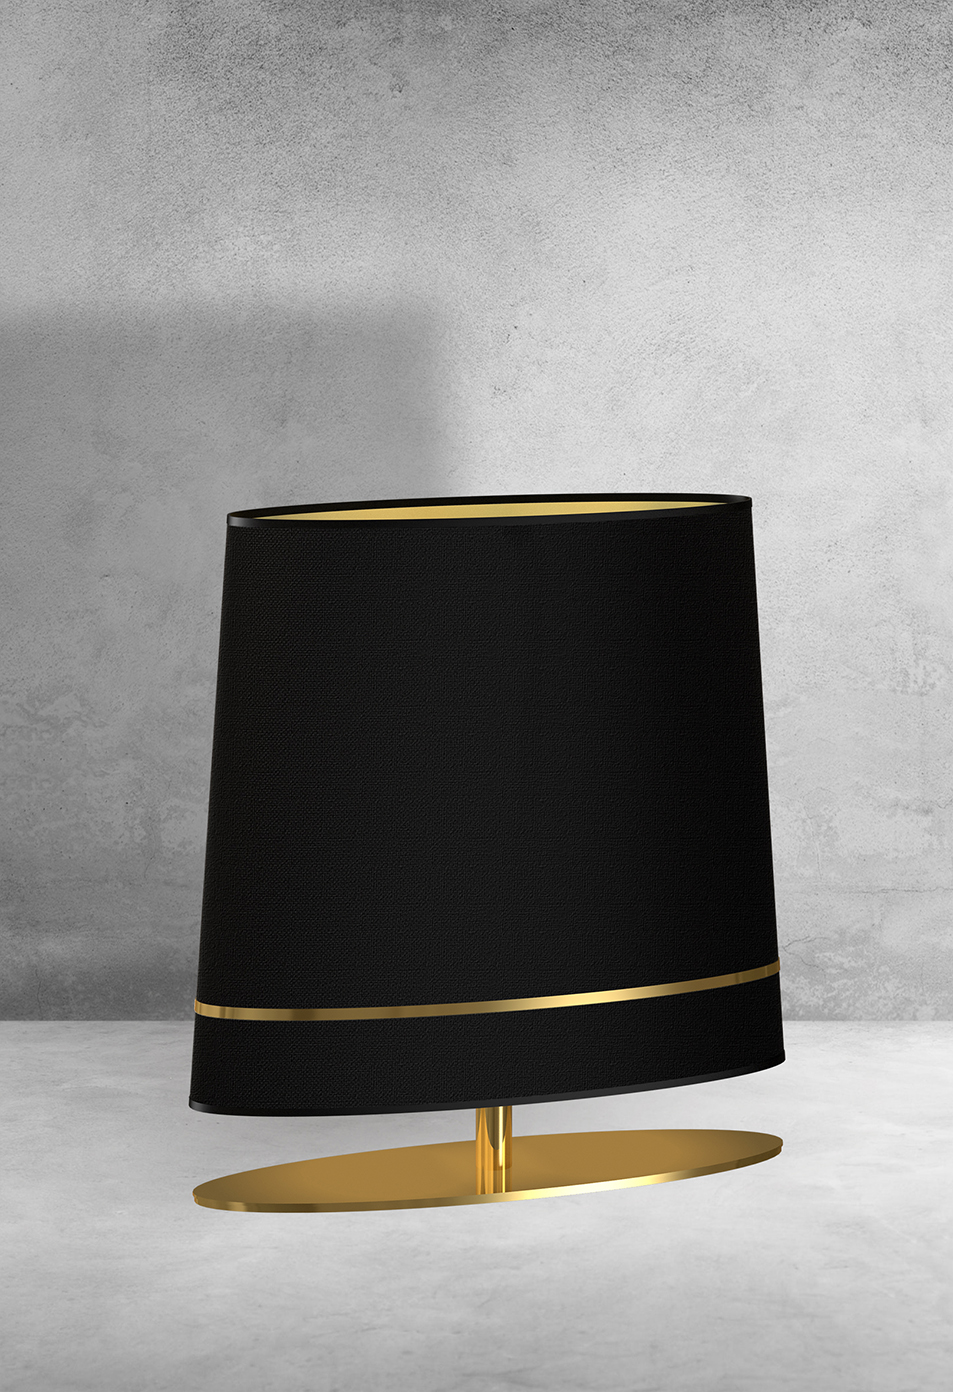 Exclusive table lamp BOOTES in Art Déco style with gold and fabric shade